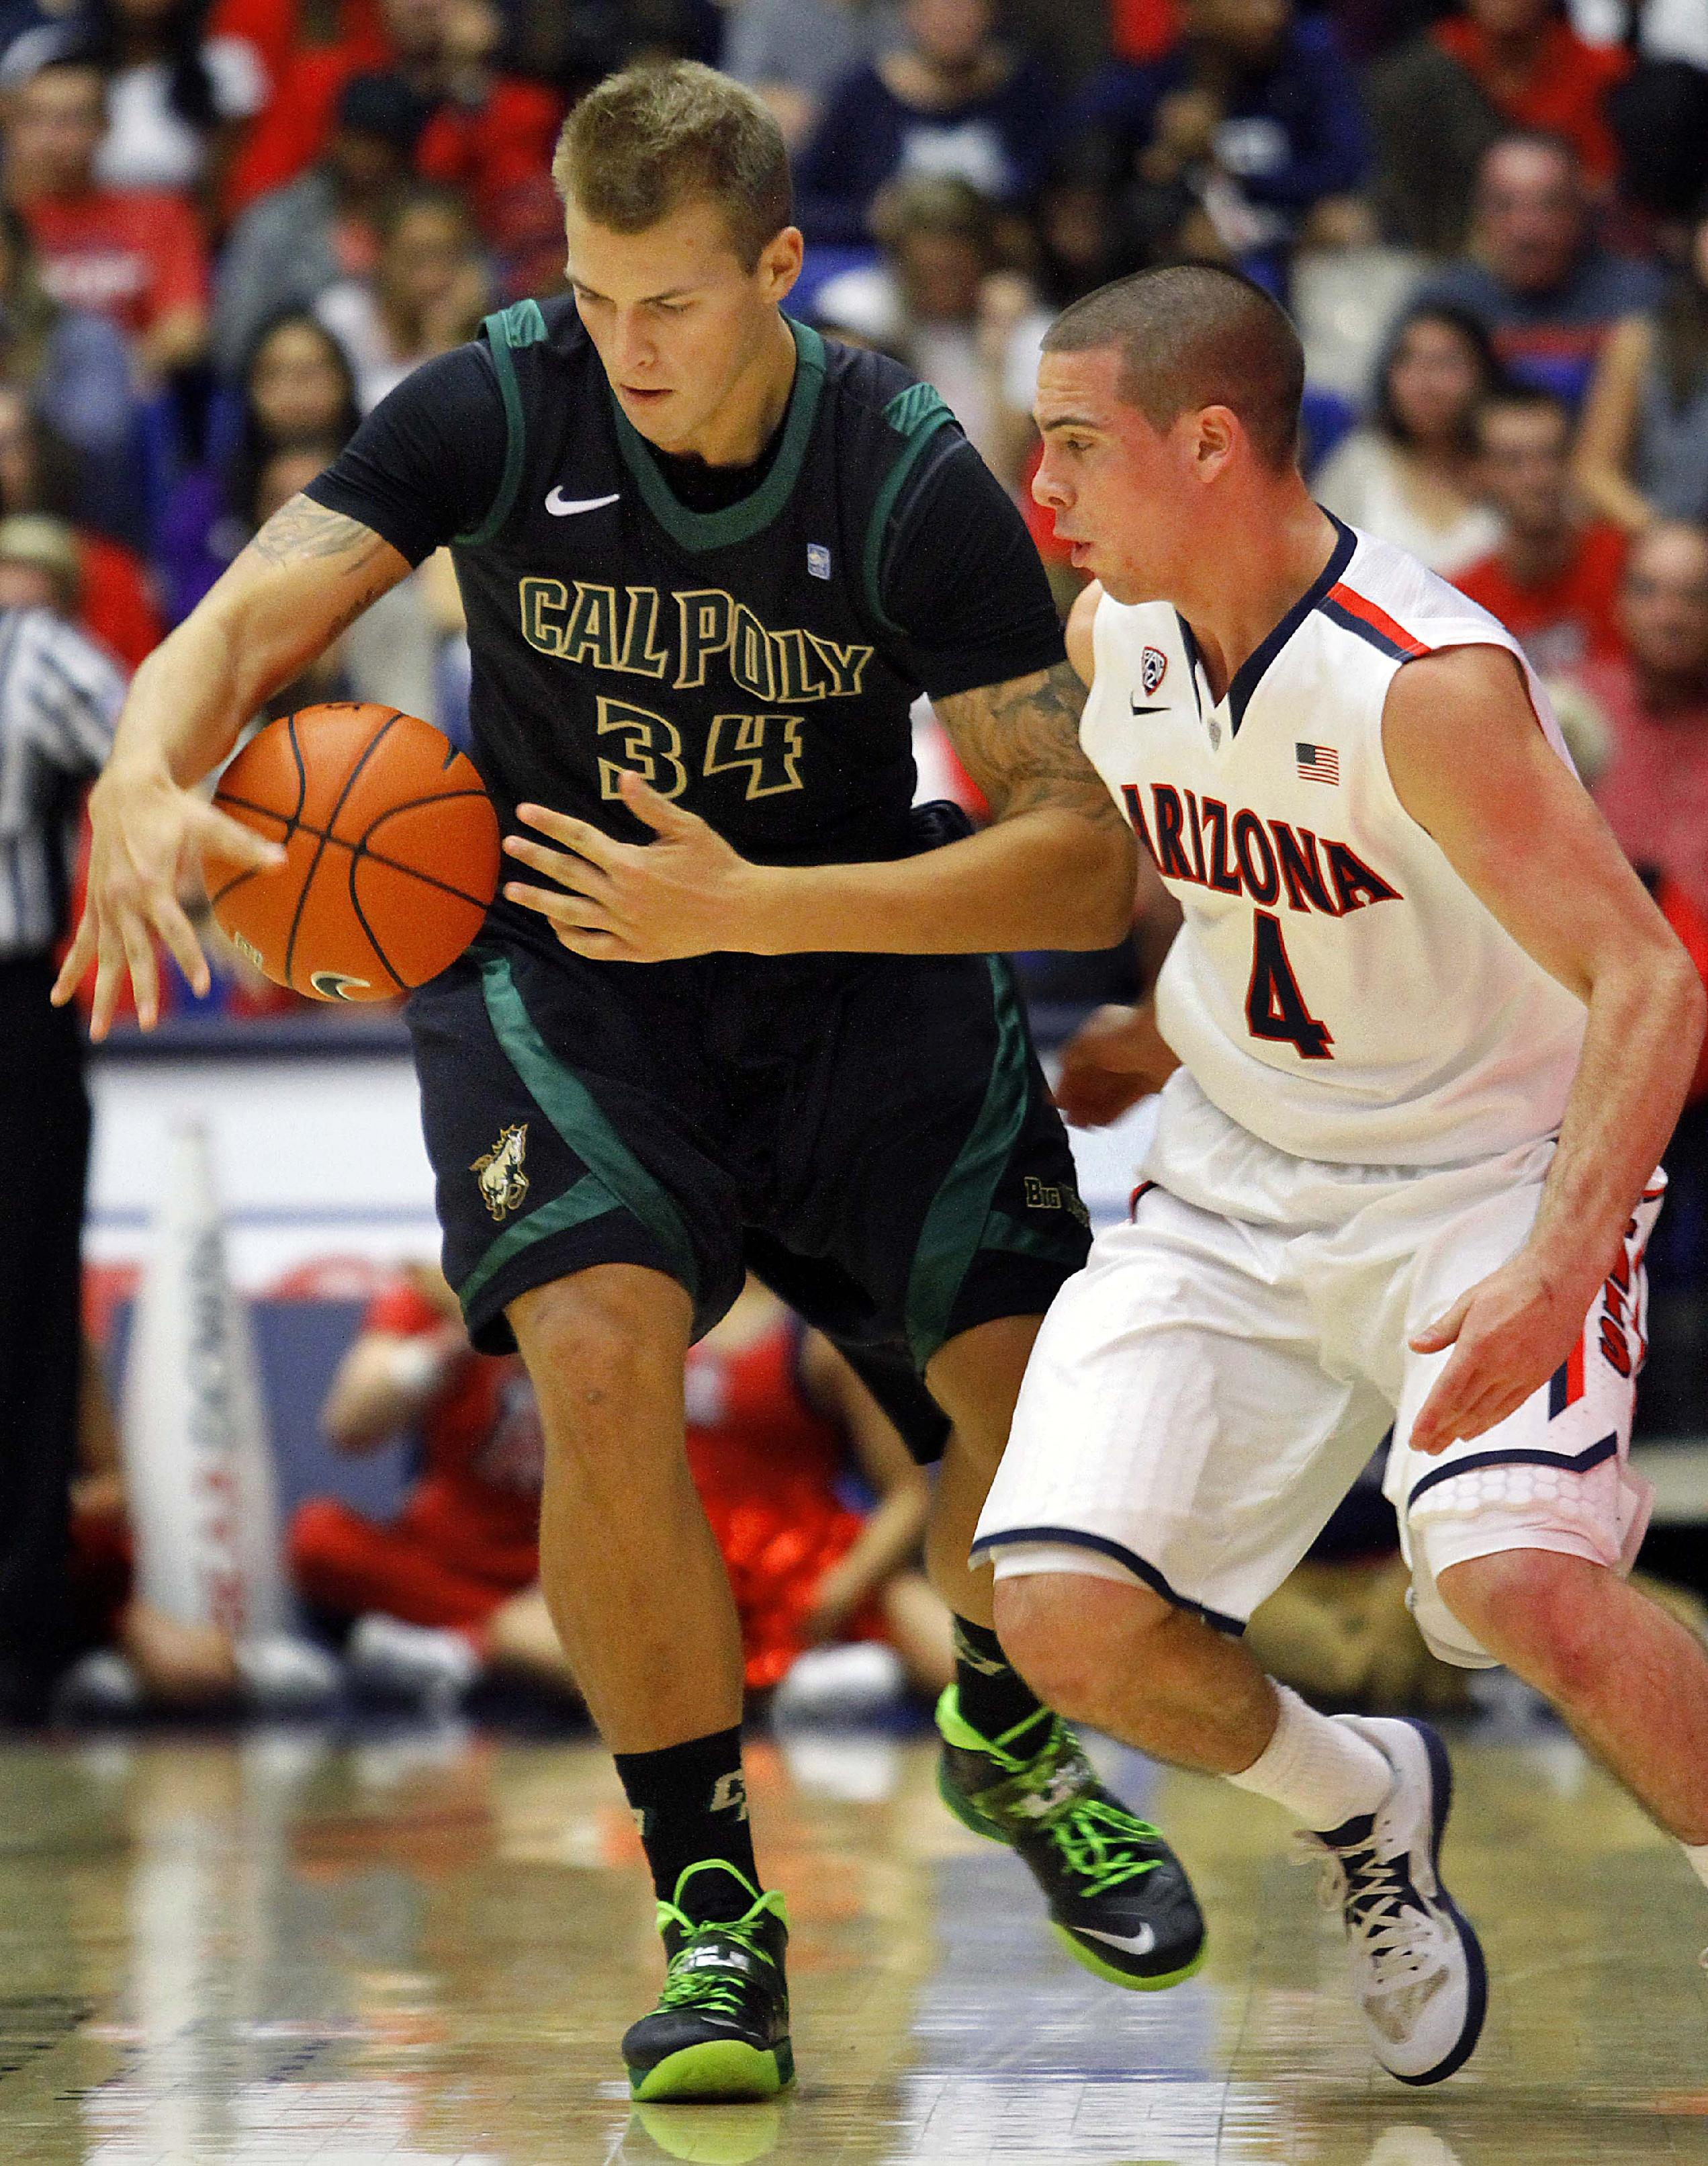 Cal Poy's Brian Benneff (34) and Arizona's T.J. McConnell (4) struggles for a loose ball in the first half of an NCAA college basketball game, Friday, Nov. 8, 2013 in Tucson, Ariz